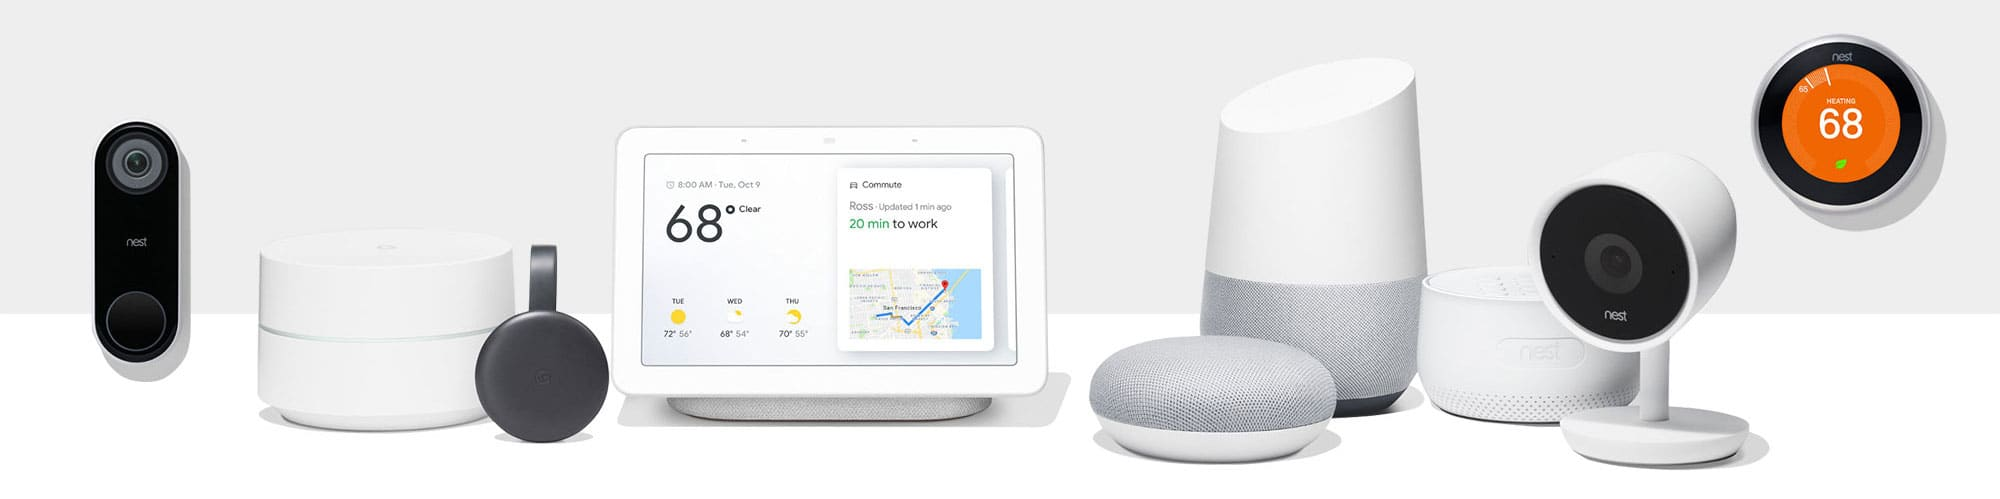 Nest and Google home under one roof